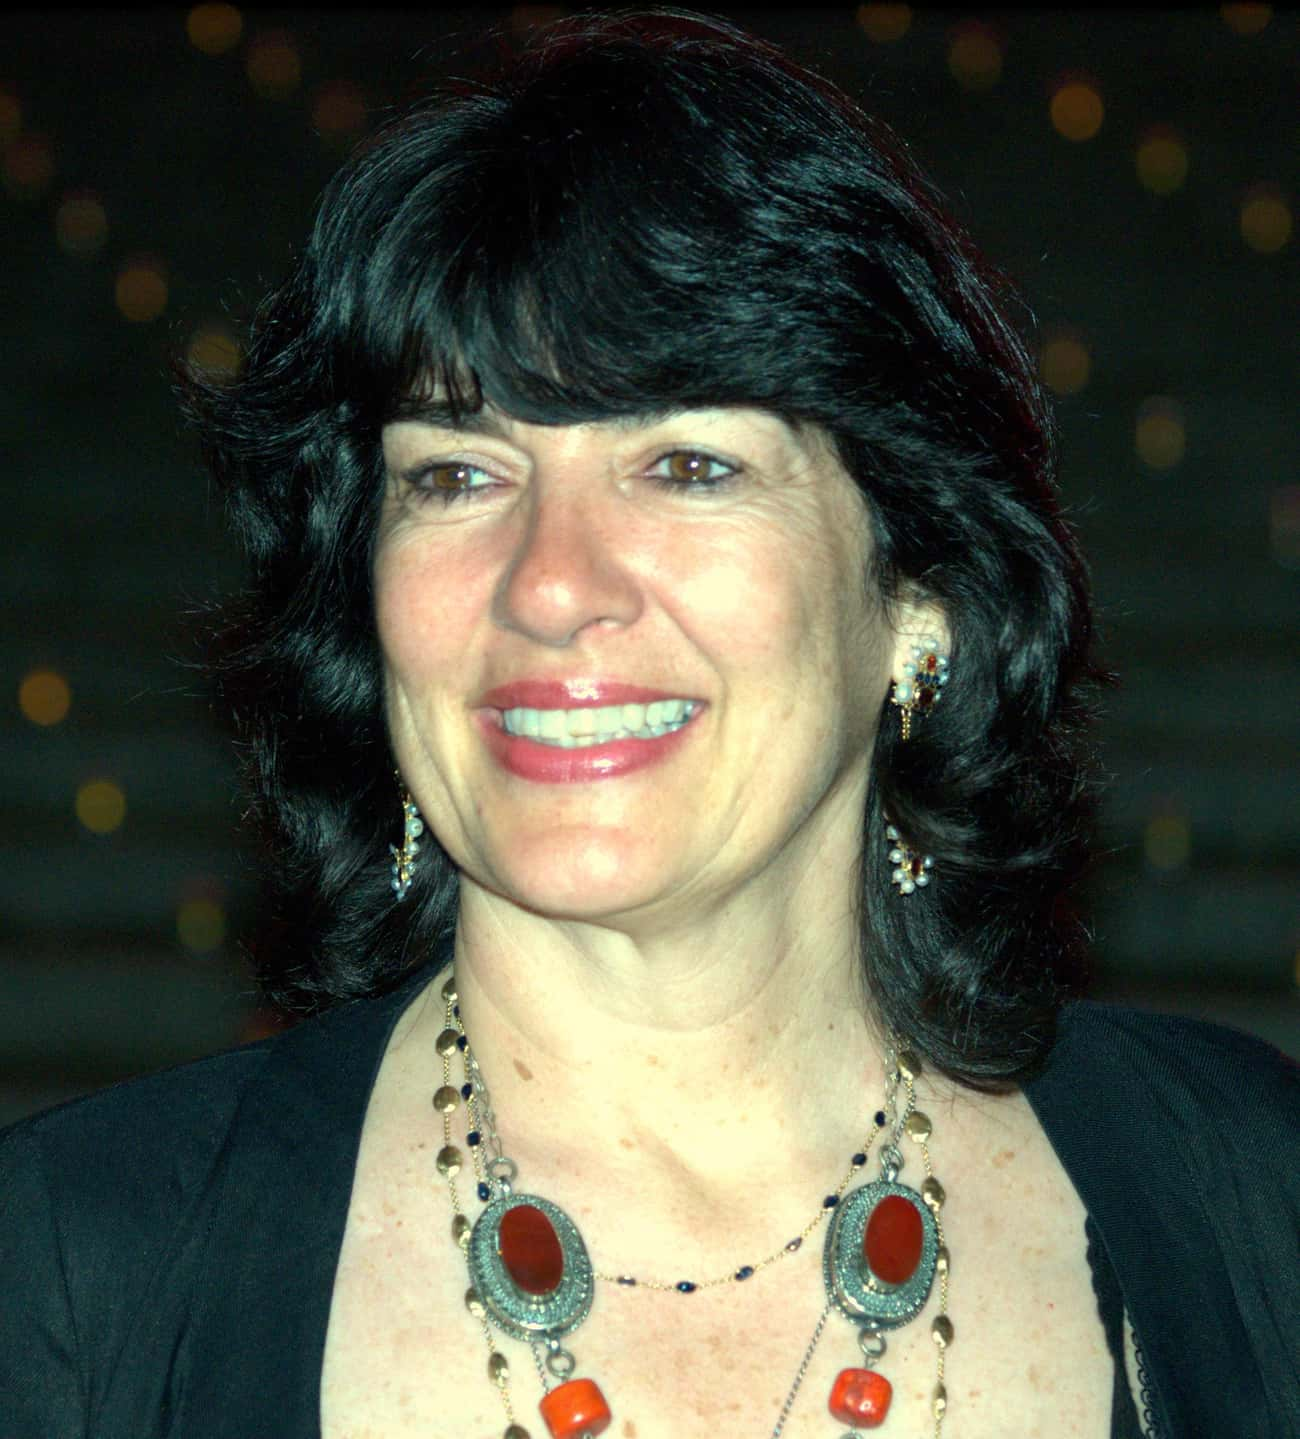 Christiane Amanpour is listed (or ranked) 1 on the list 16 Celebrities Who Divorced After Age 60